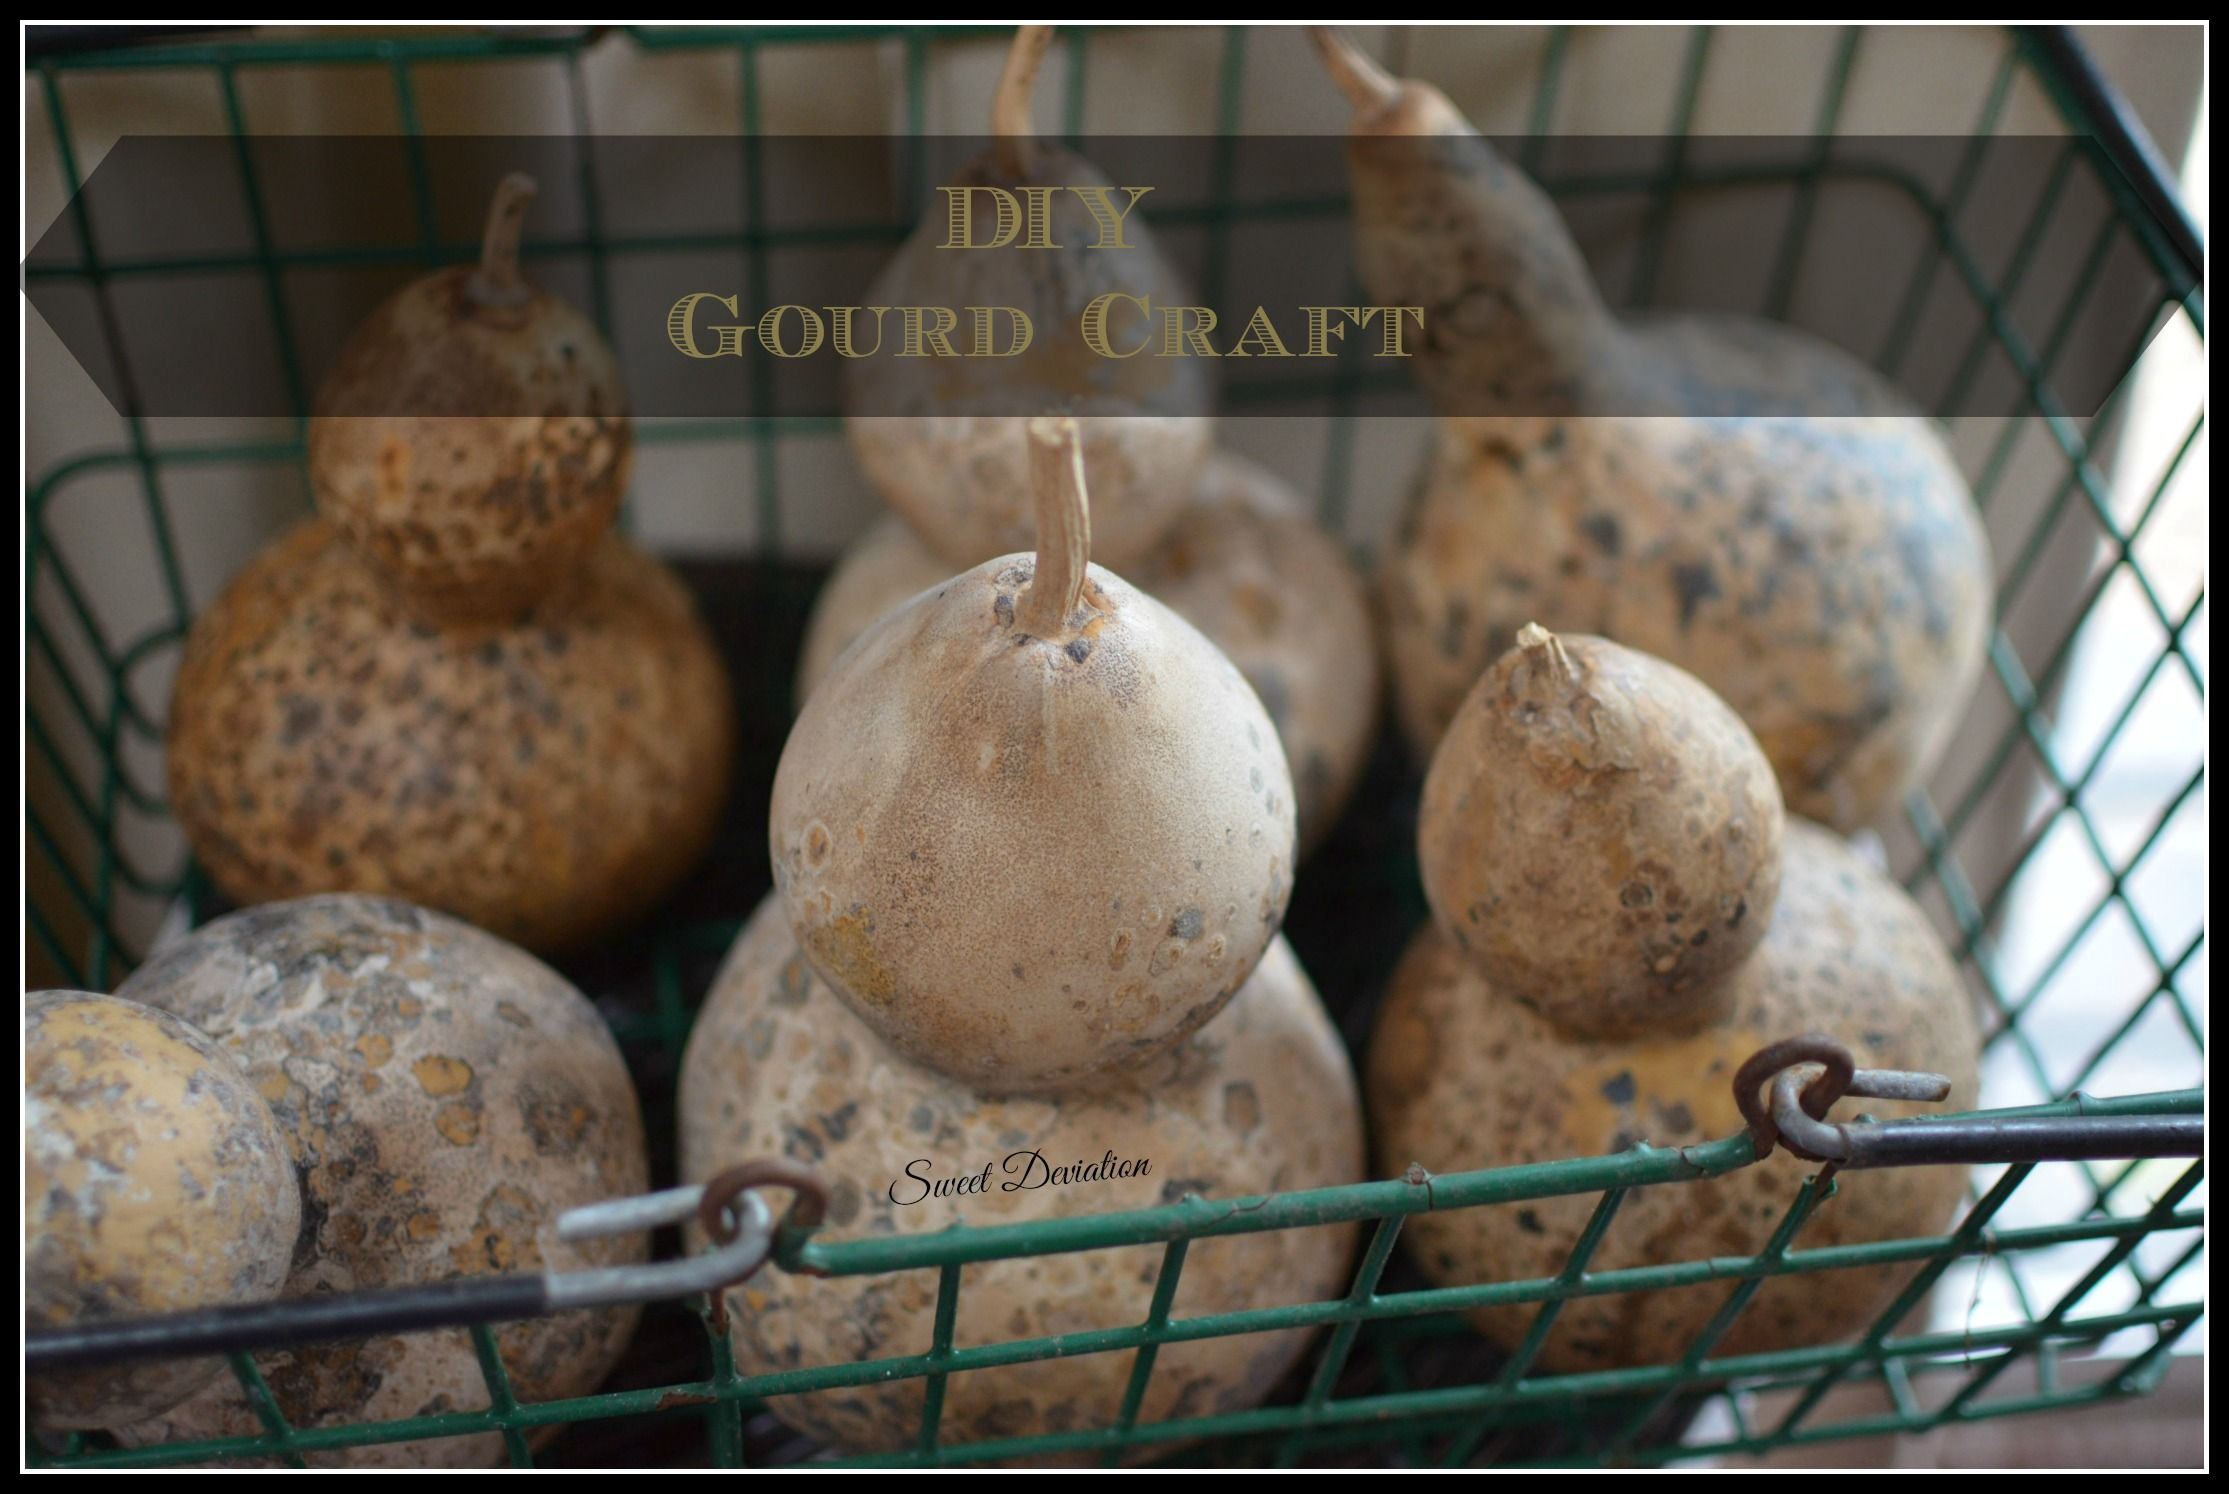 Diy gourd craft with images gourds crafts yarn bowls